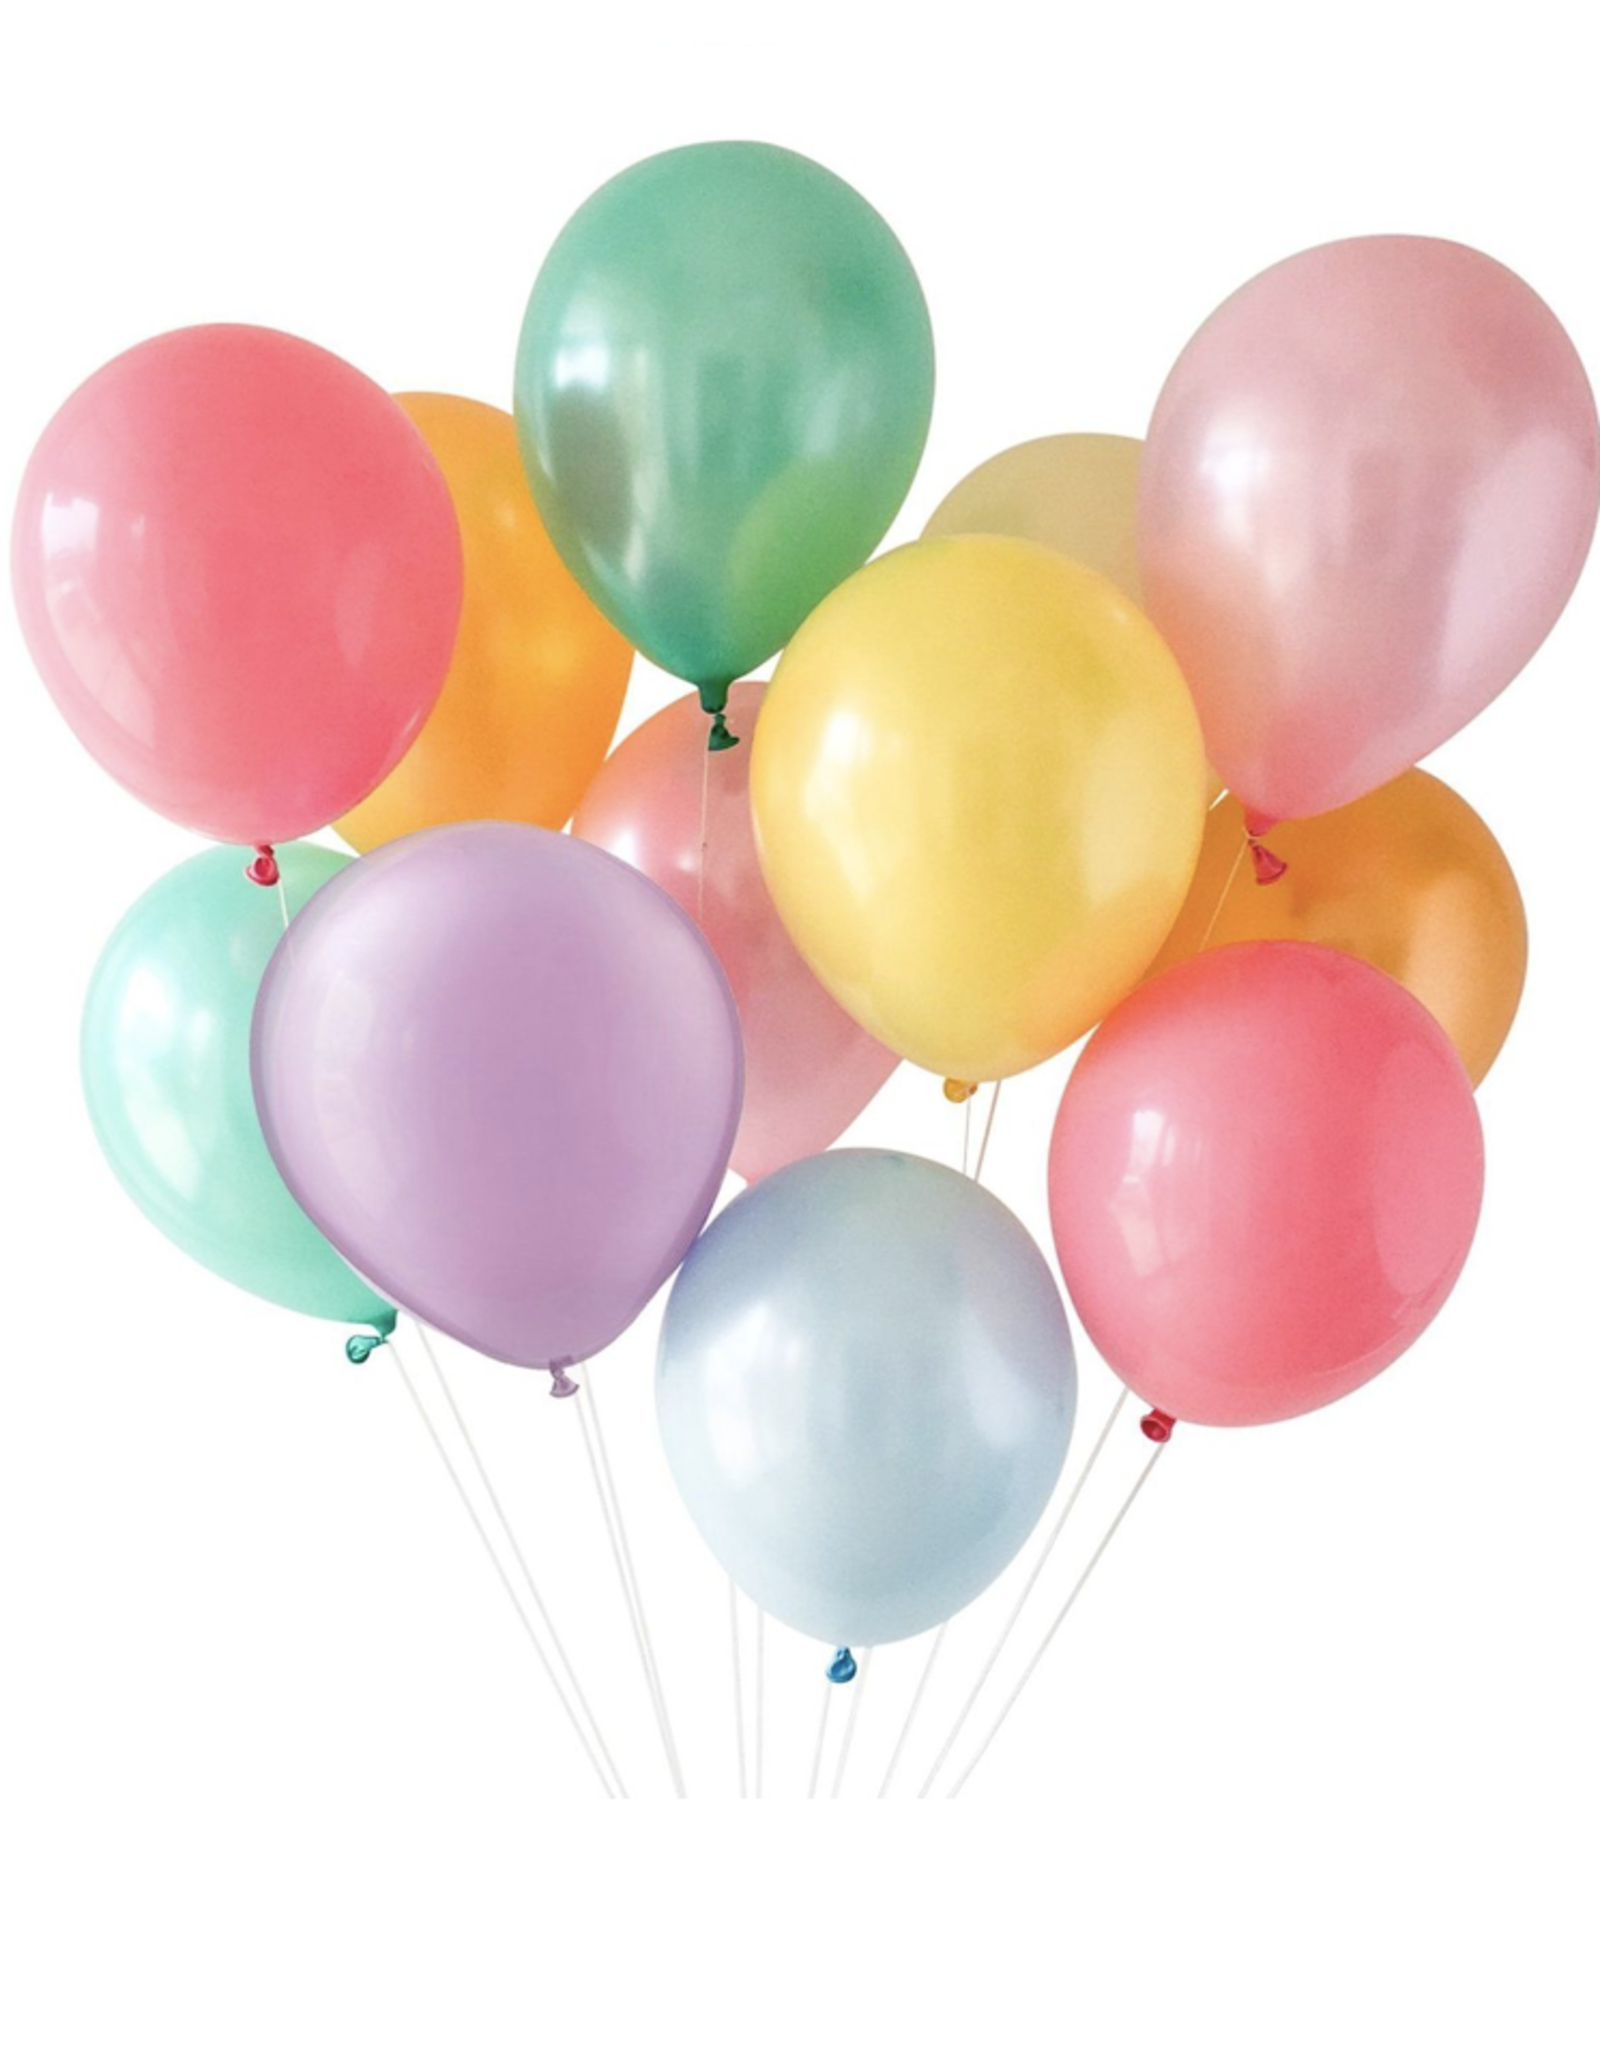 Lark Gift Express - Balloon Bundle Large